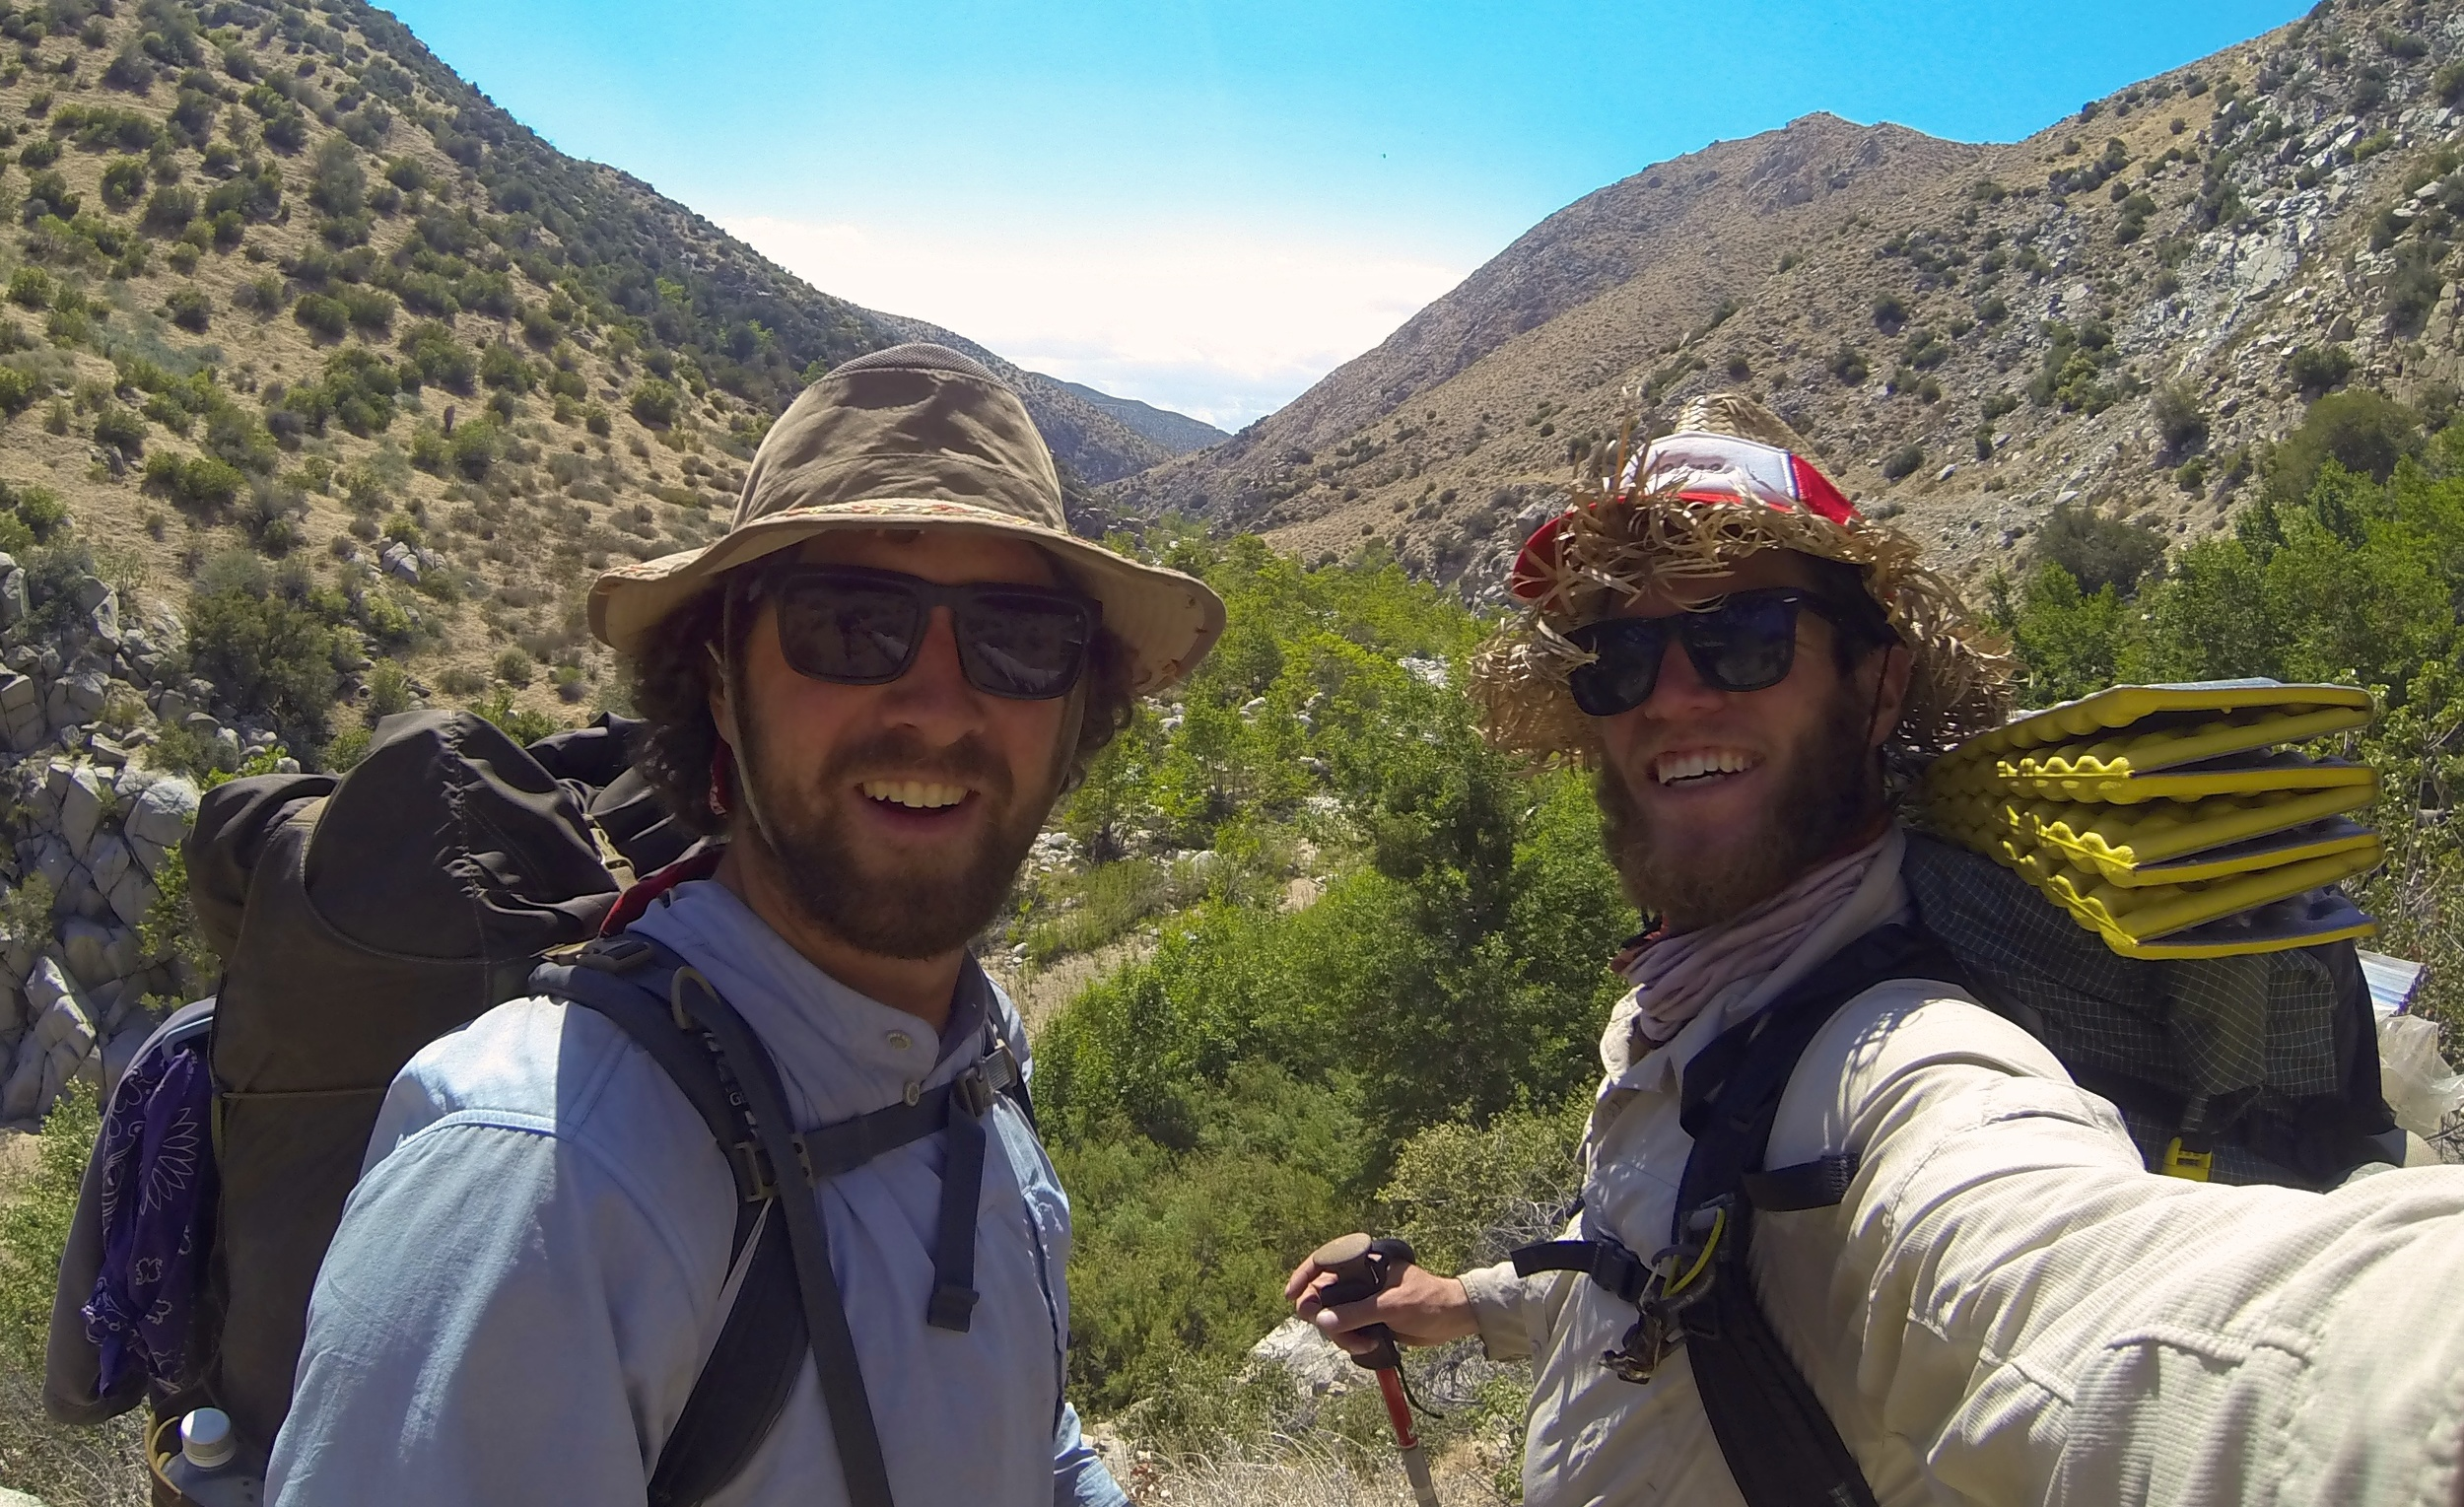 Colin and Casey in Southern California on the Pacific Crest Trail